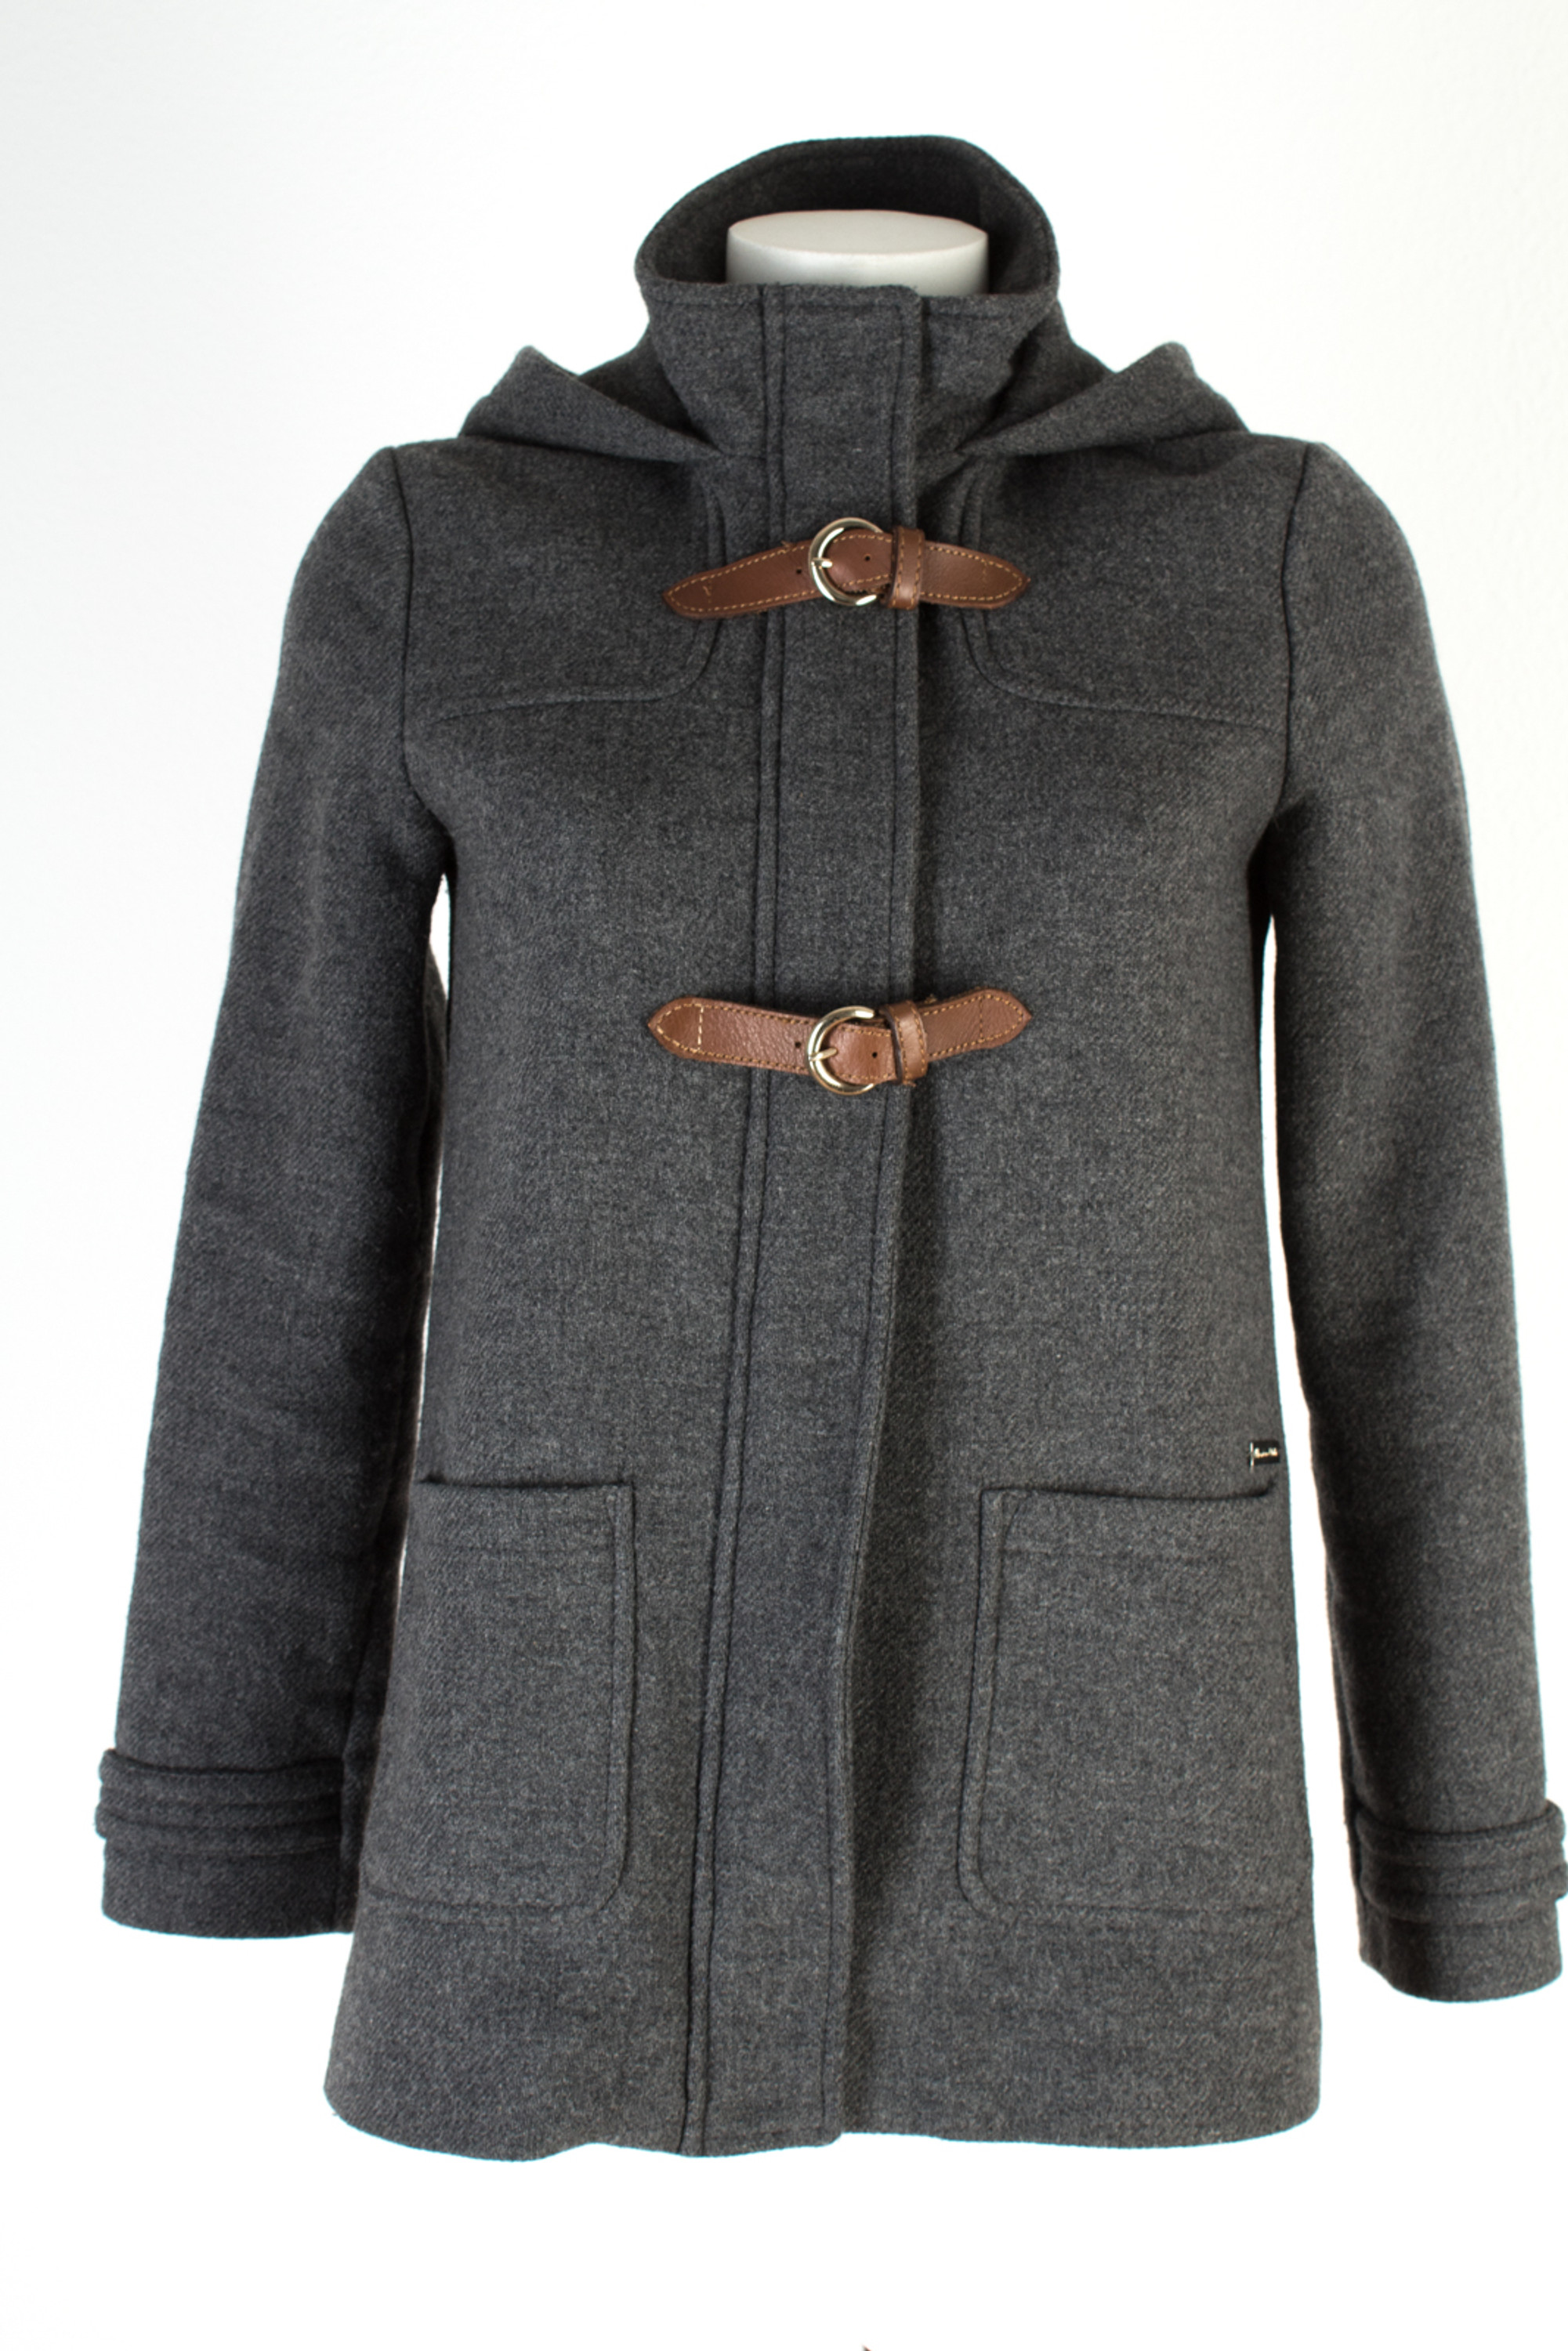 newest collection 7a321 1c598 Massimo Dutti Mädchen Jacke Gr. 13-14 A/Y 158-166 cm Wolle ...